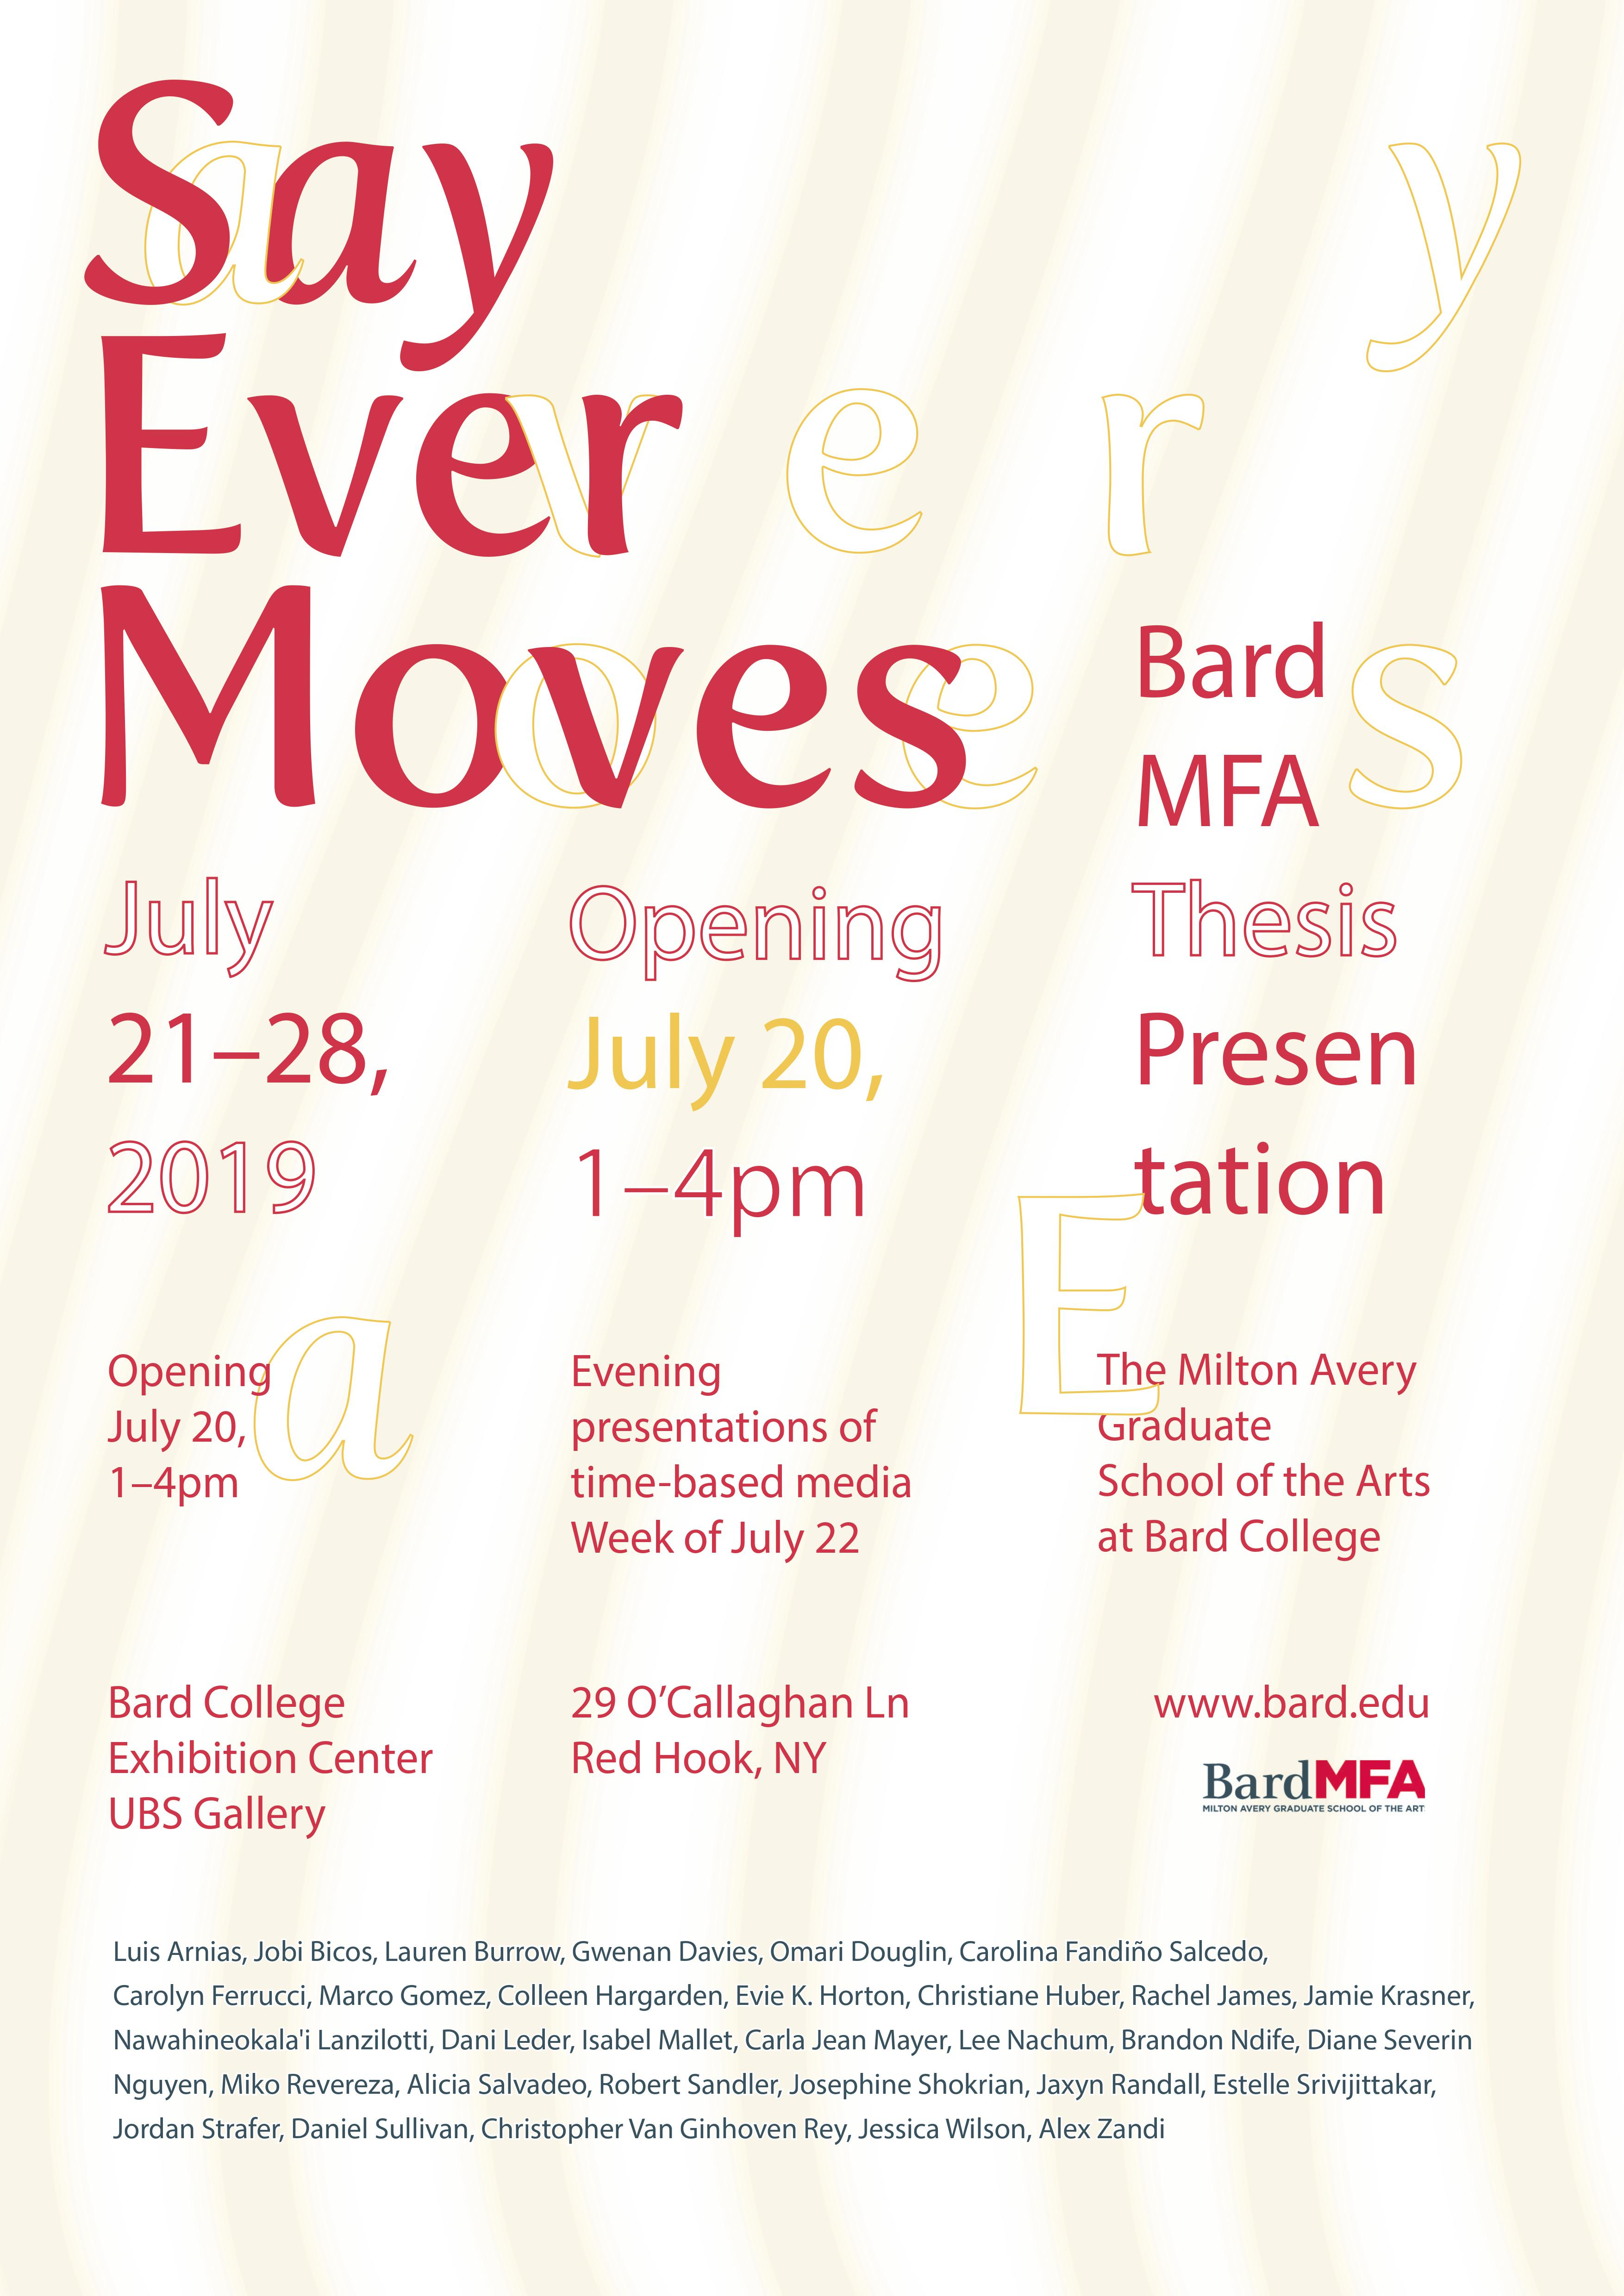 Bard Graduate Program News